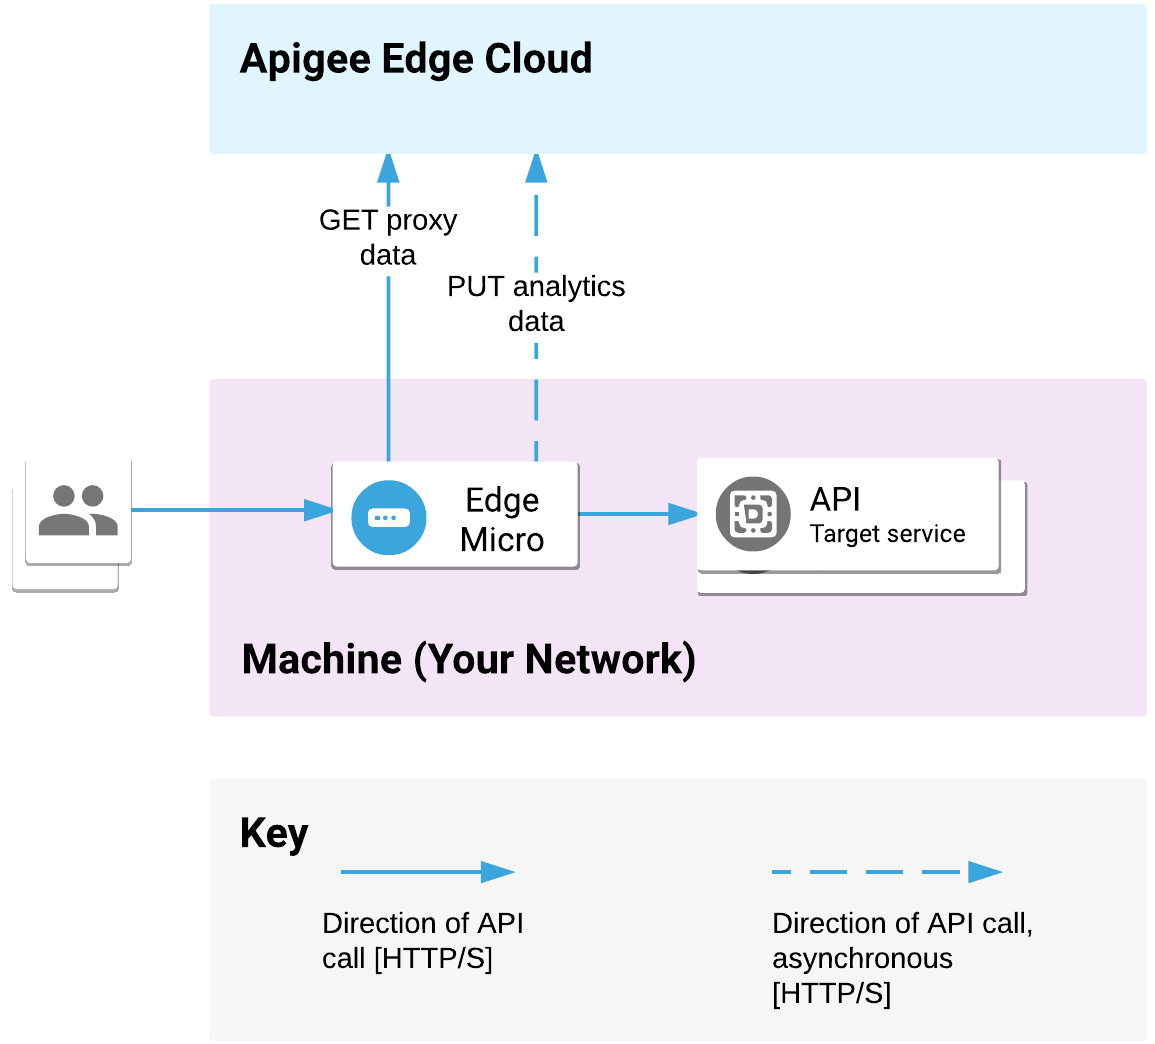 Edge microgateway is deployed on your network. It processess API requests              from clients and calls target services. The microgateway communicates proxy and              analytics data              with Apigee Edge Cloud.